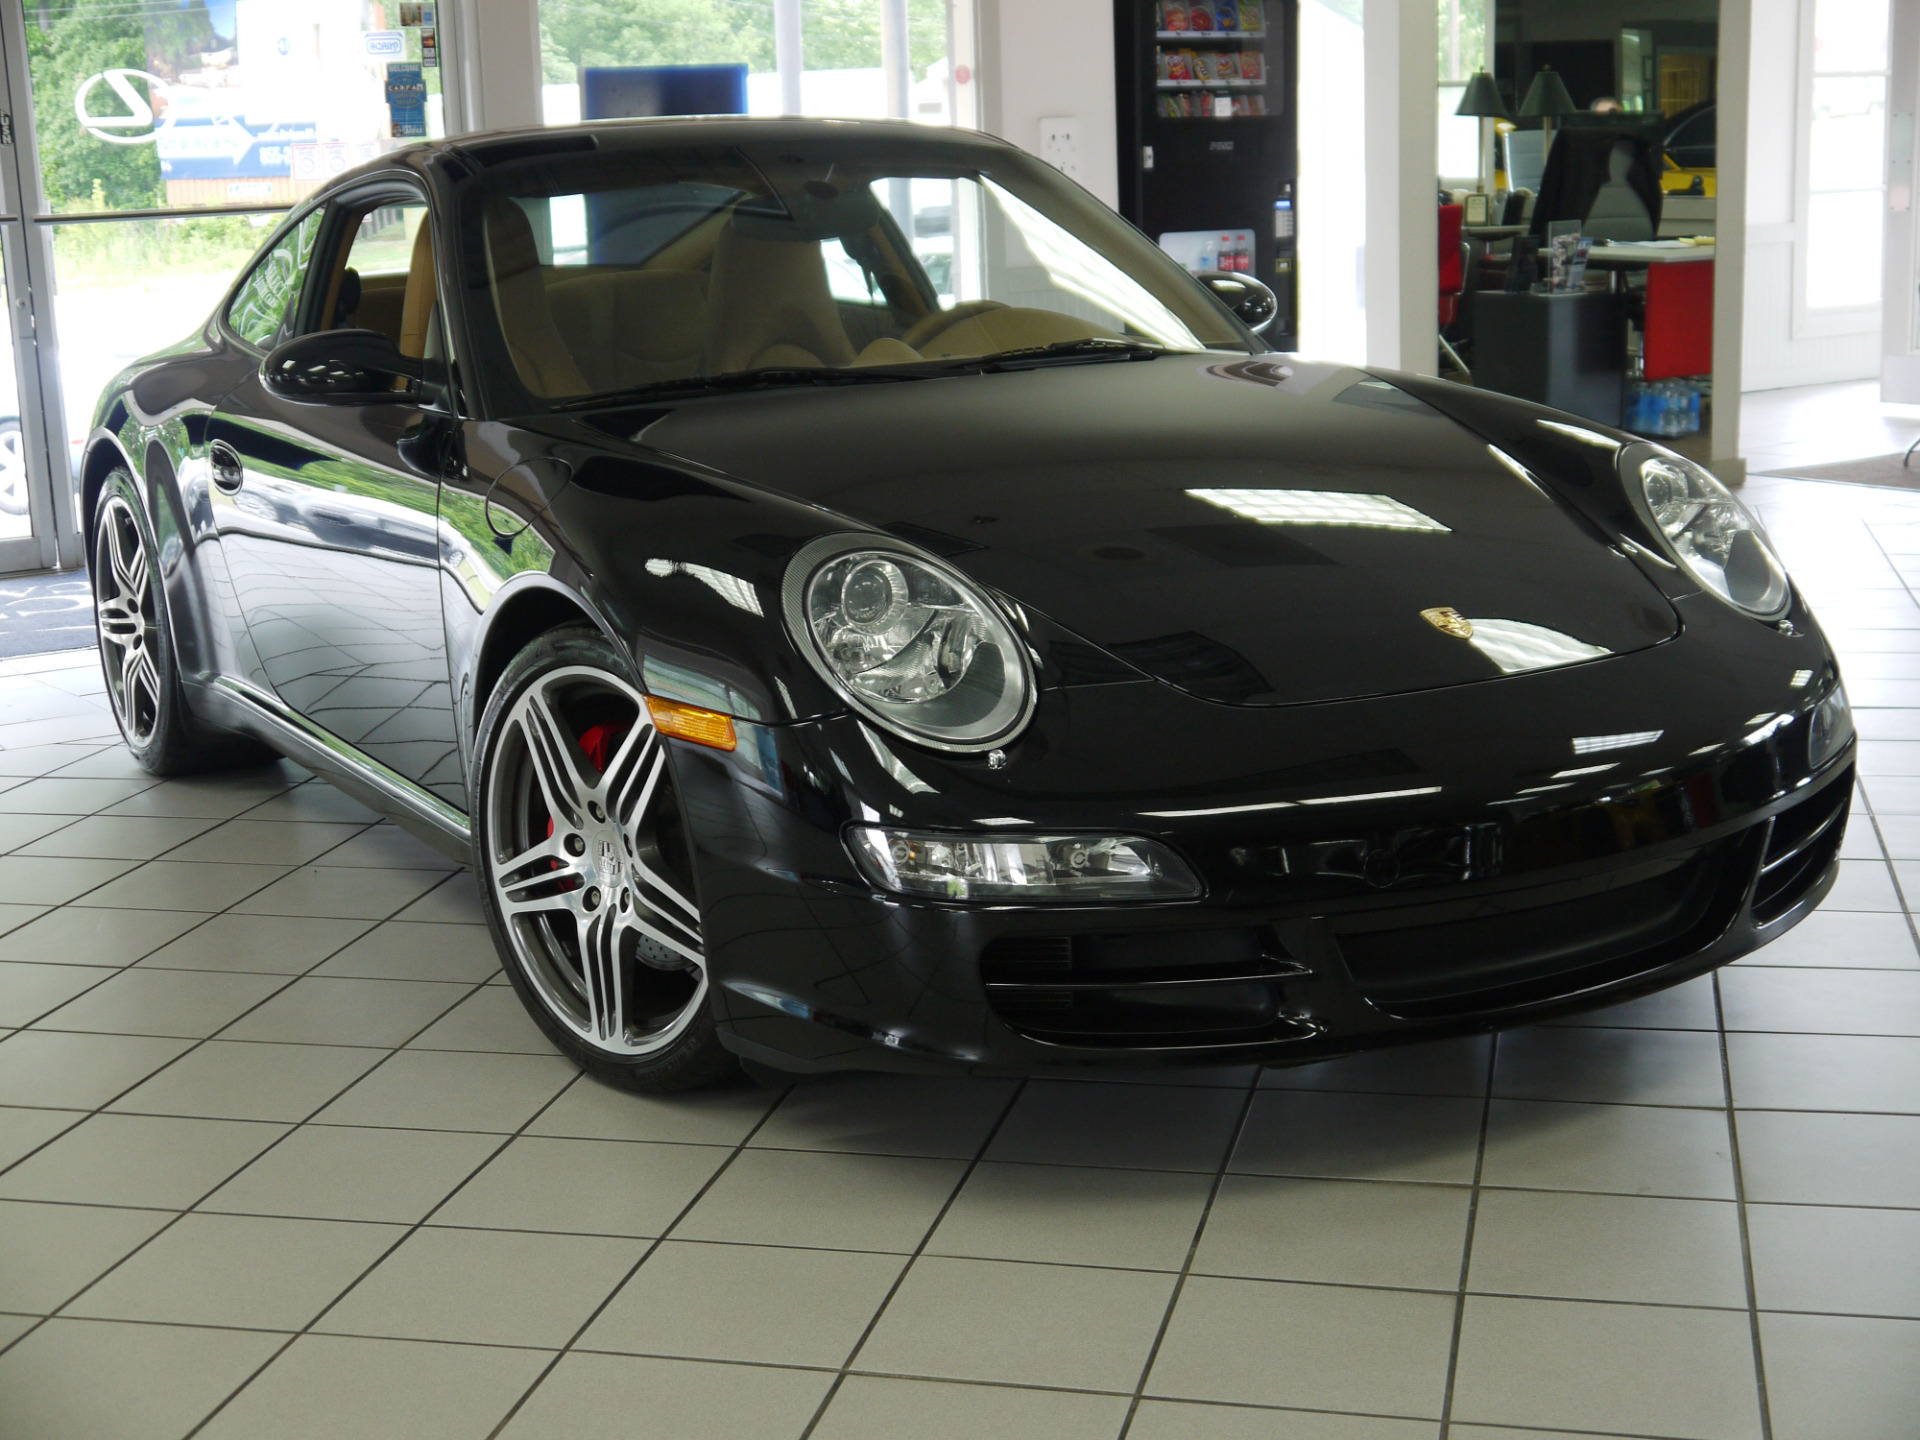 used 2008 porsche 911 carrera s marietta ga. Black Bedroom Furniture Sets. Home Design Ideas